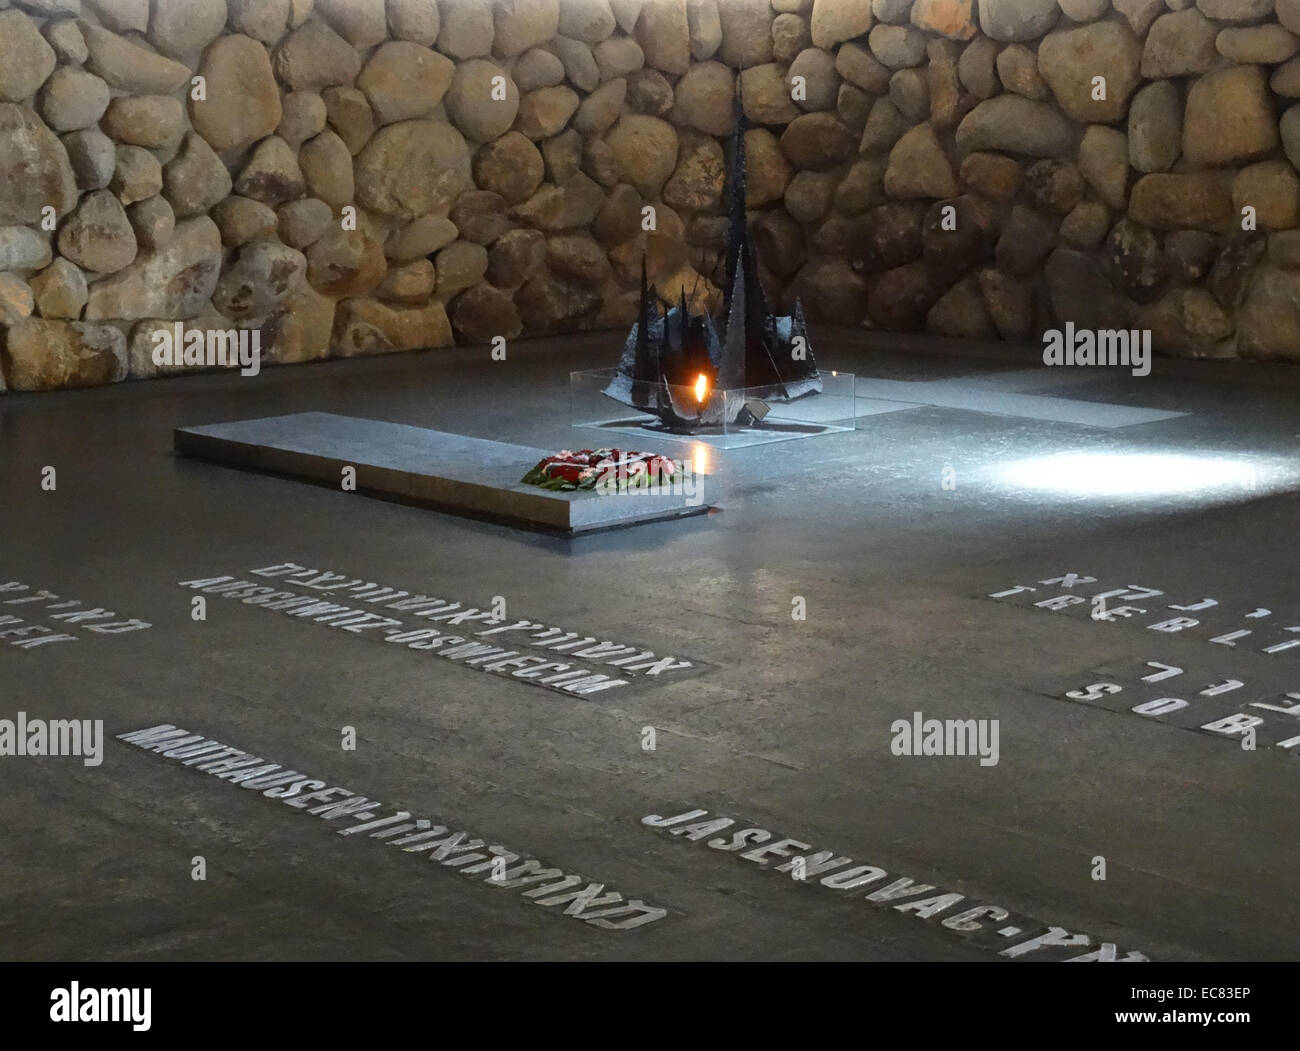 The Children's Memorial at Yad Vashem; Jerusalem to the Jewish Children who were murdered during the Holocaust. - Stock Image